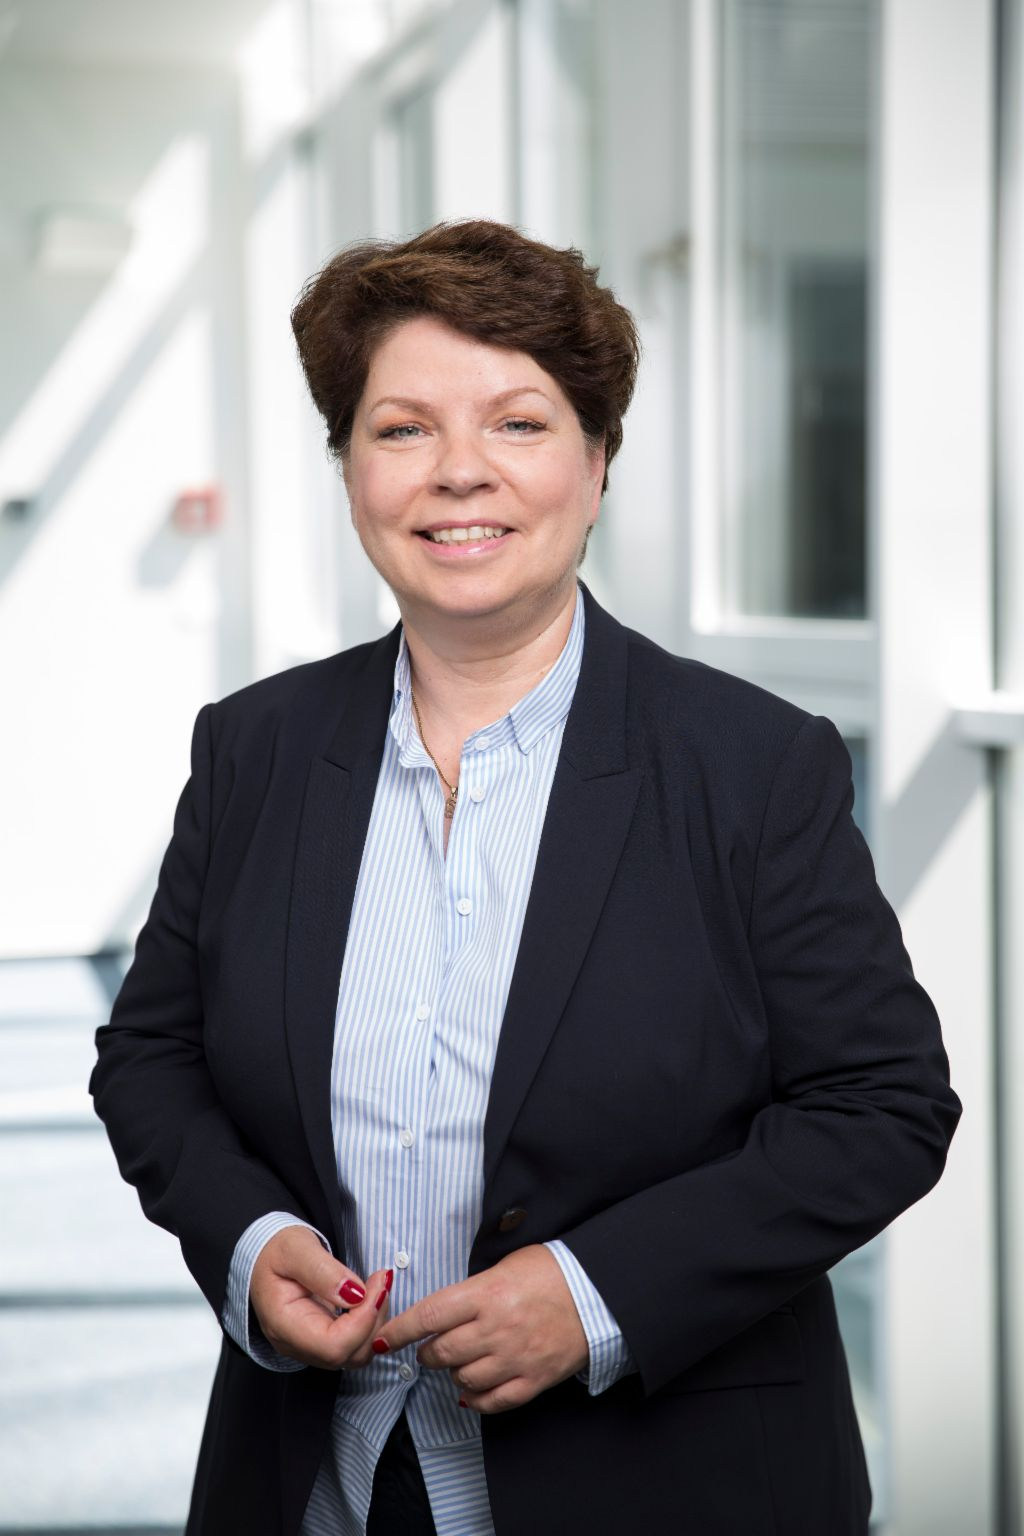 Kirsten Pedd, Chef-Syndika und Head of Public Affairs der EOS Gruppe